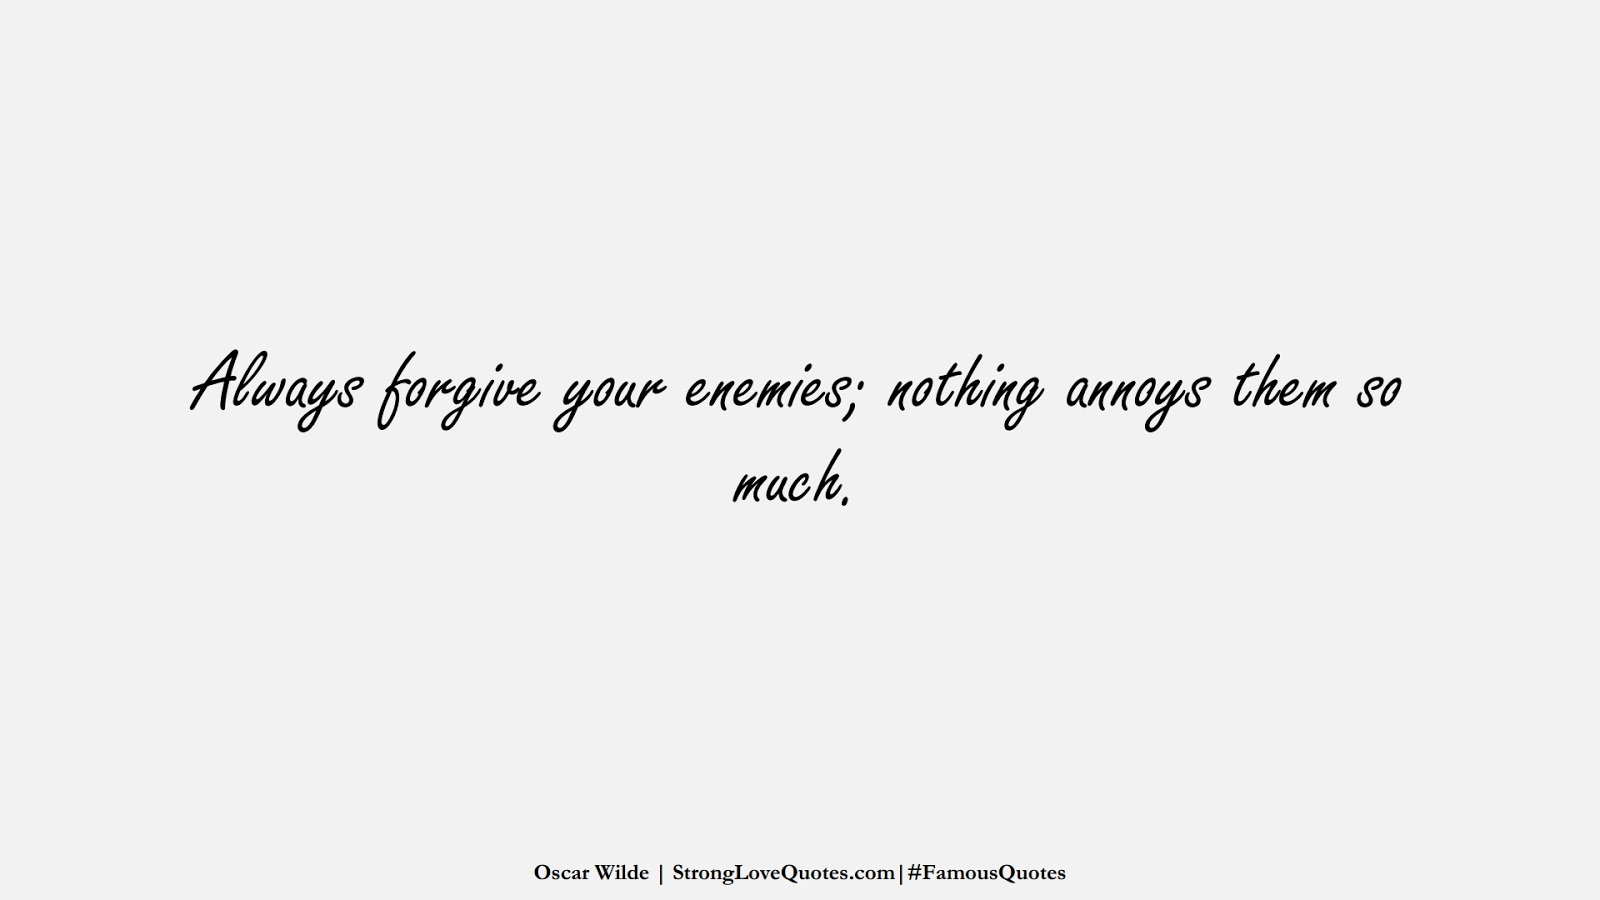 Always forgive your enemies; nothing annoys them so much. (Oscar Wilde);  #FamousQuotes